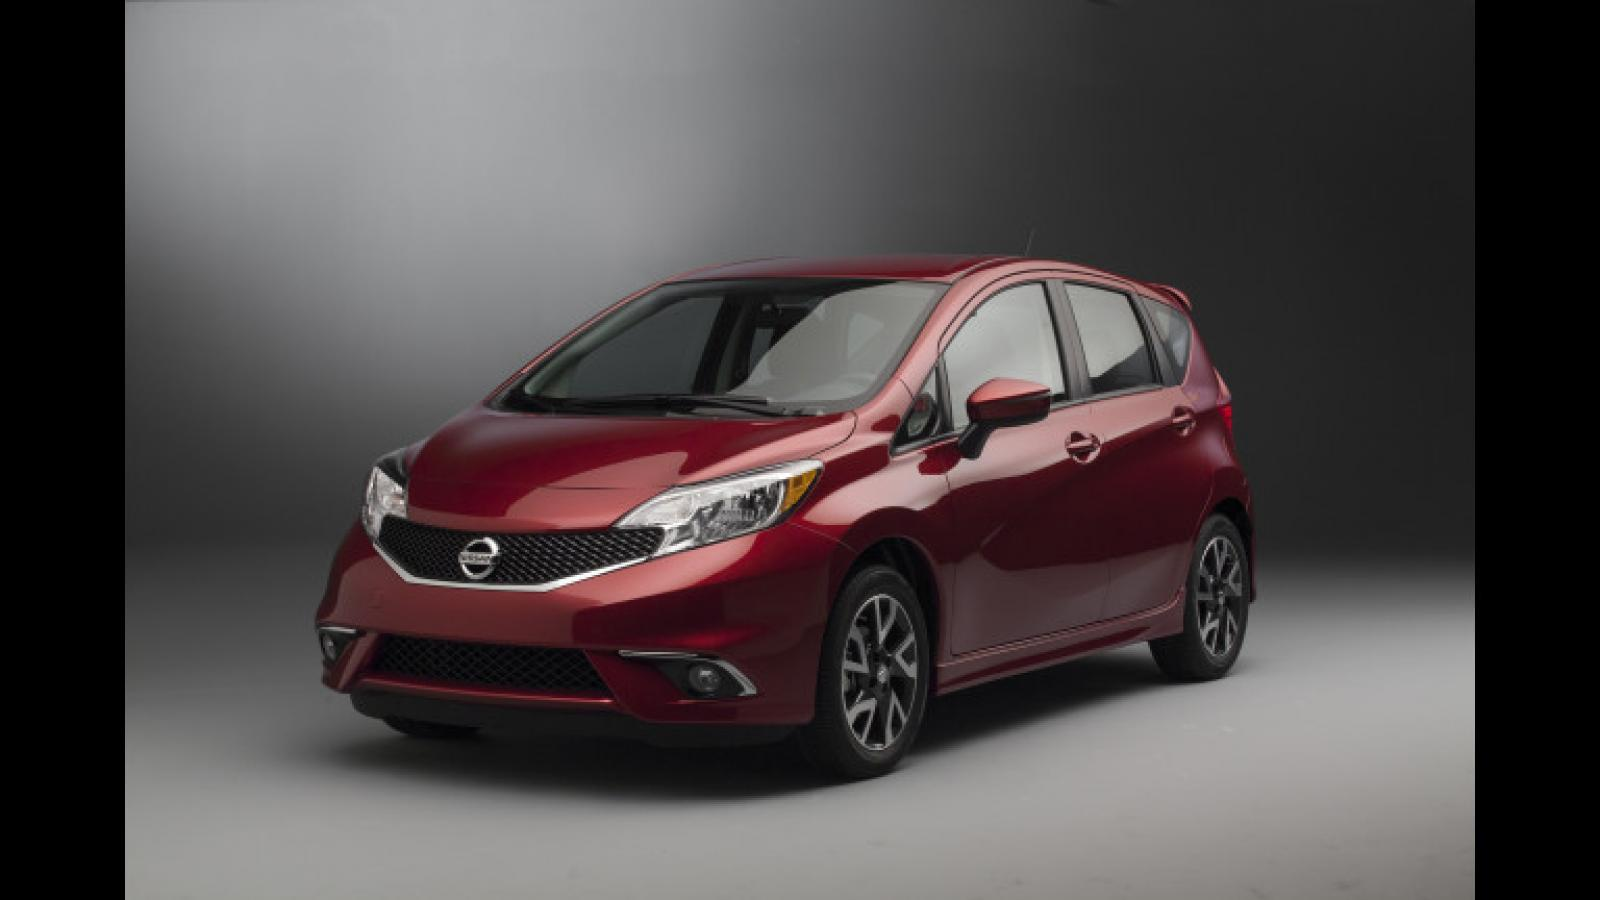 2015 nissan versa note information and photos zomb drive. Black Bedroom Furniture Sets. Home Design Ideas